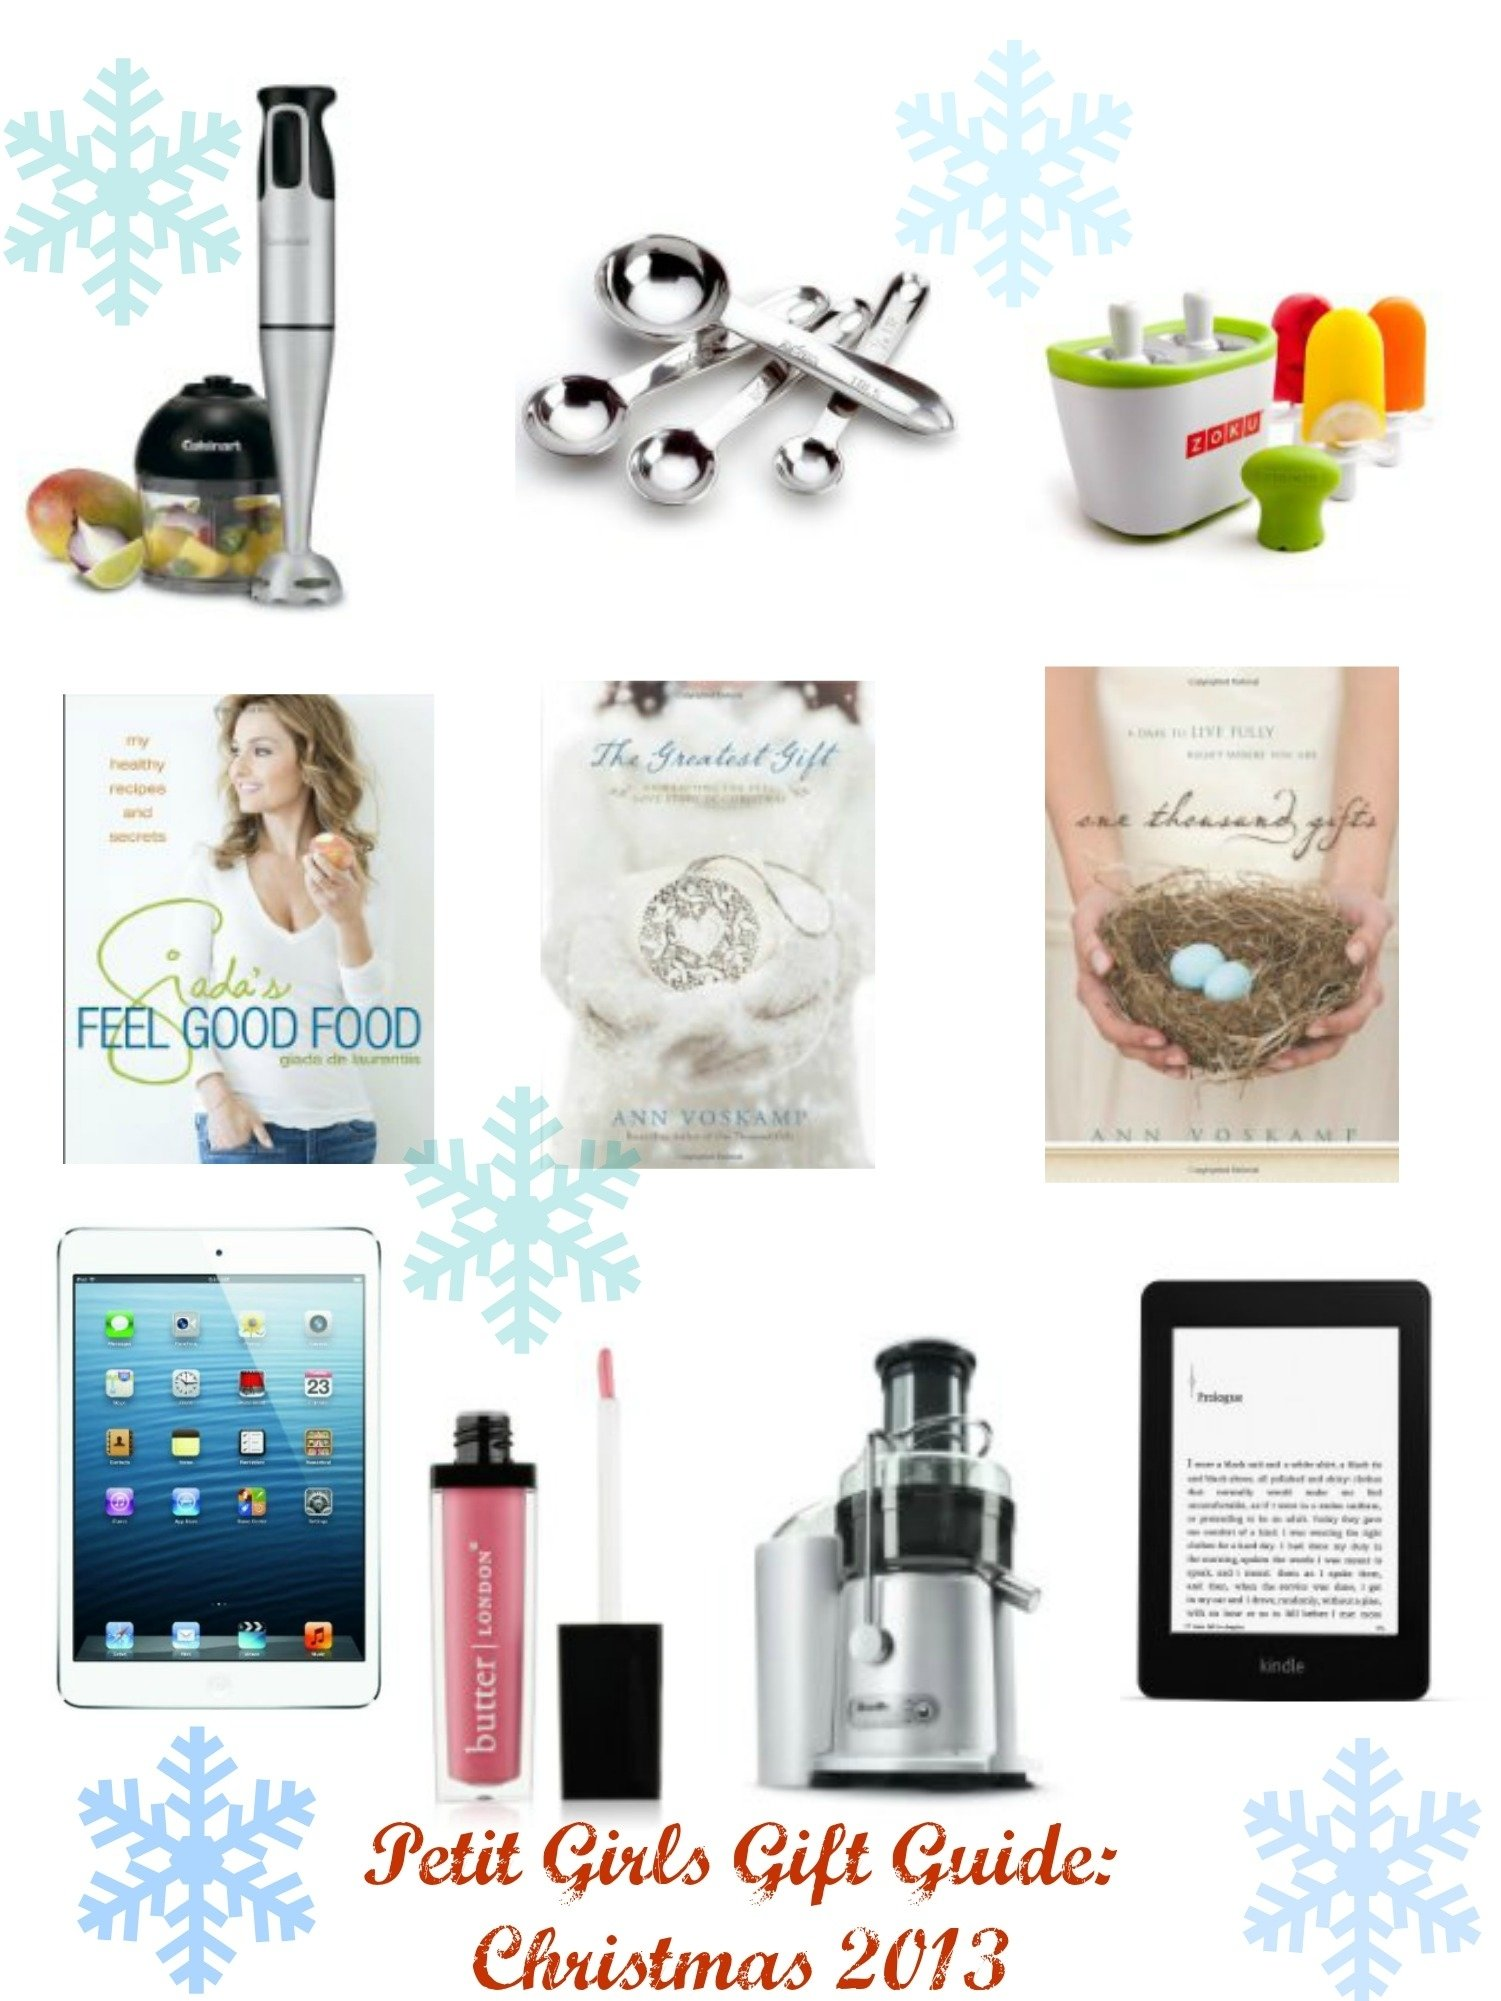 petit girls gift guide: christmas gift ideas 2013 - petit foodie